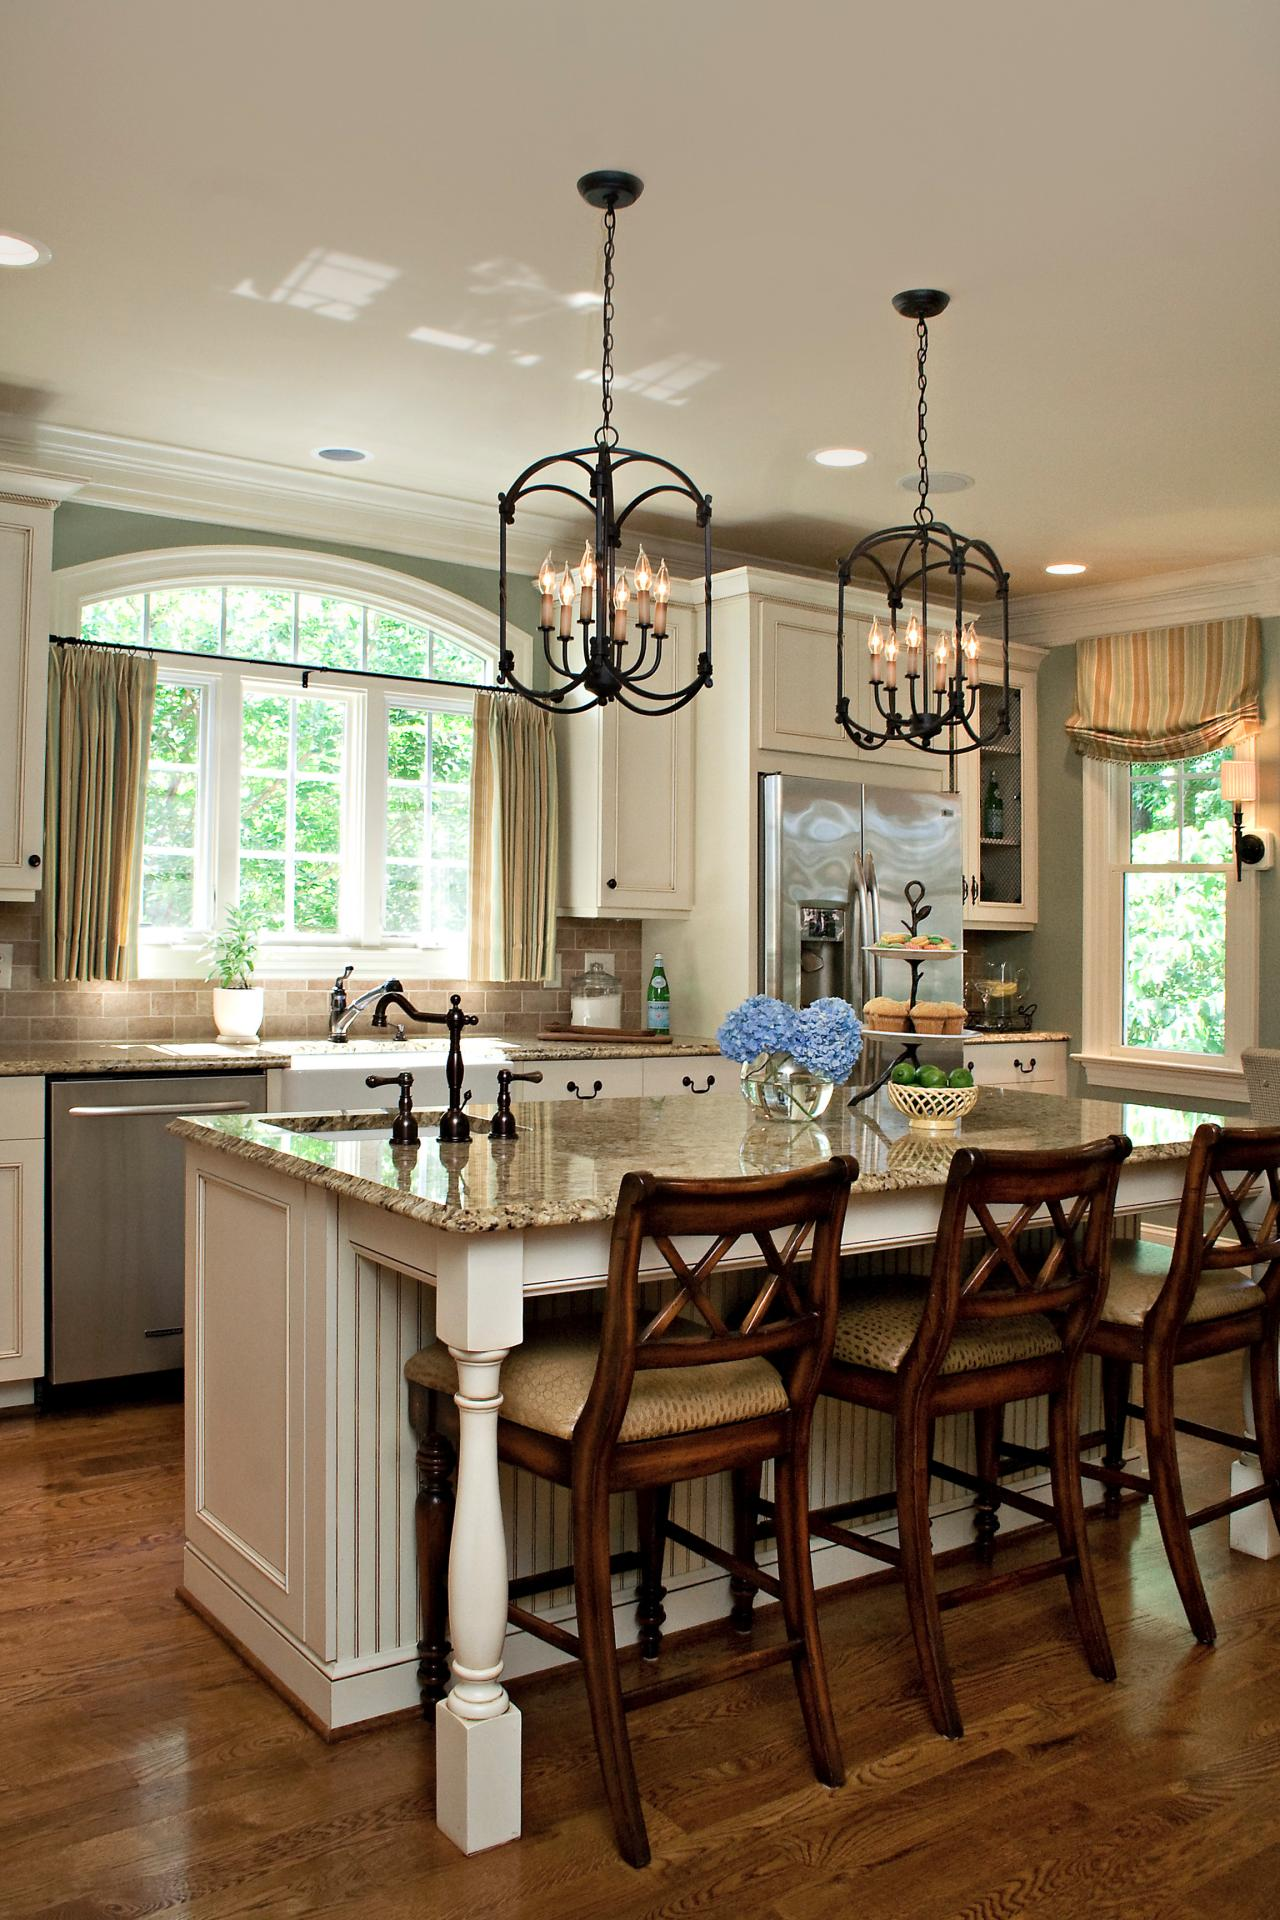 Attractive Kitchen Decor Using Pendant Lighting also Bar Table and Chair